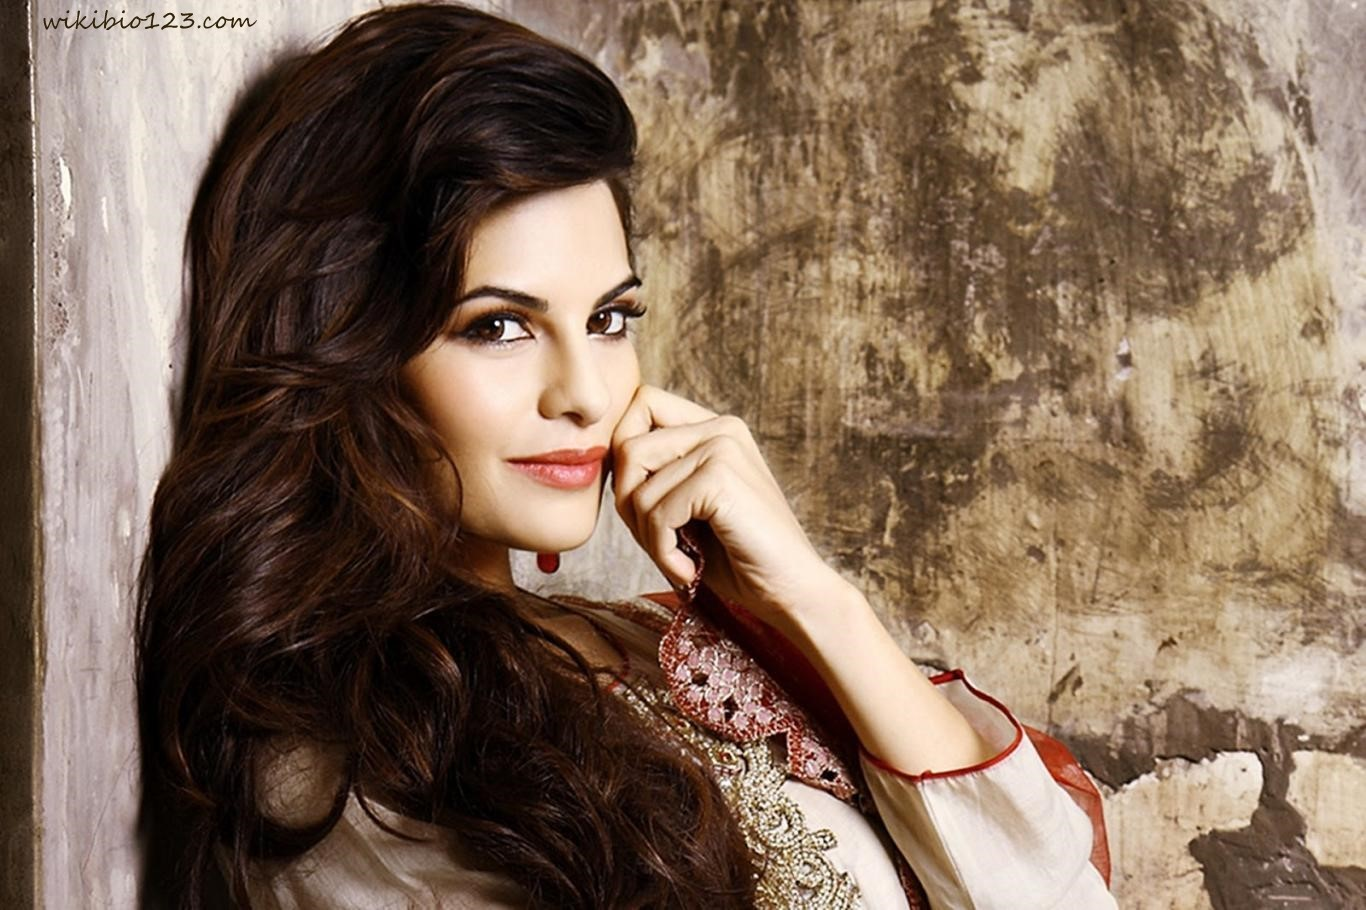 Jacqueline Fernandez wiki Bio Age Figure size Height HD Images Wallpapers Download